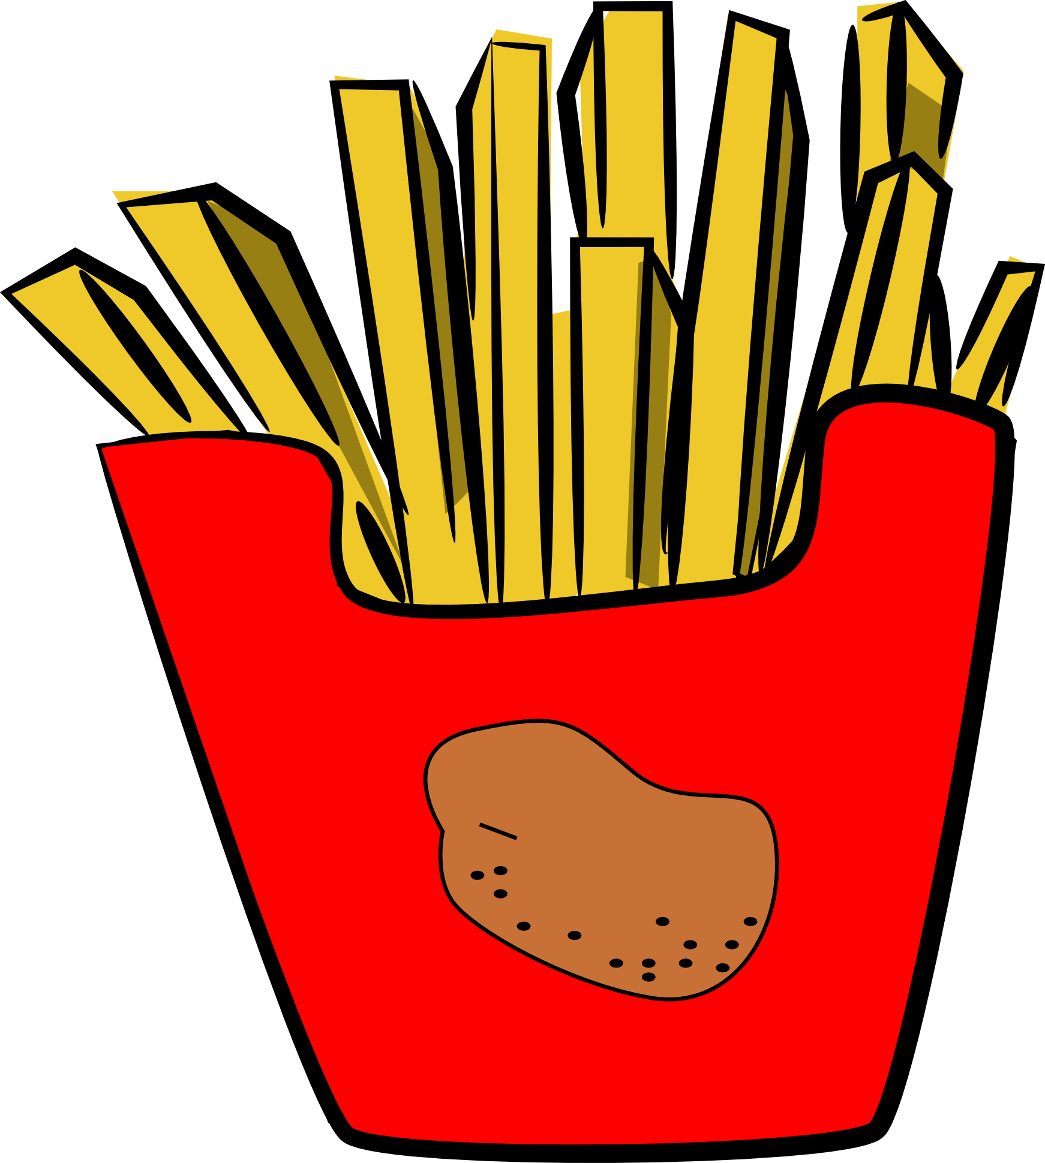 French Fries Clipart - ClipArt Best